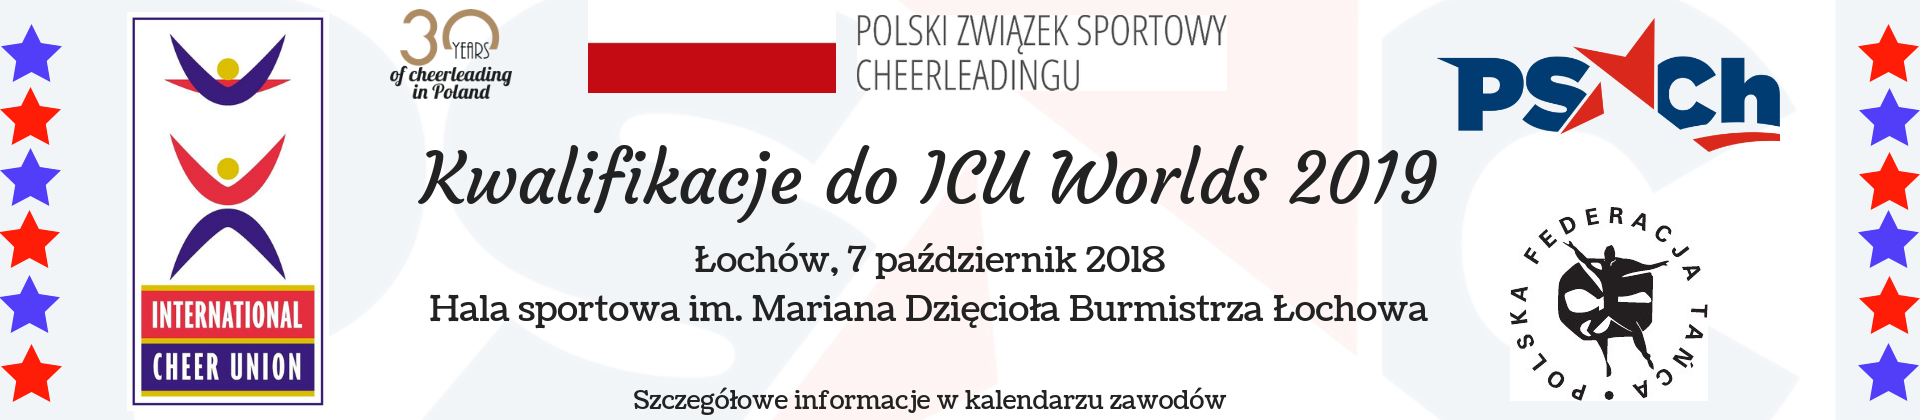 Kwalifikacje do ICU Worlds 2019 (1)